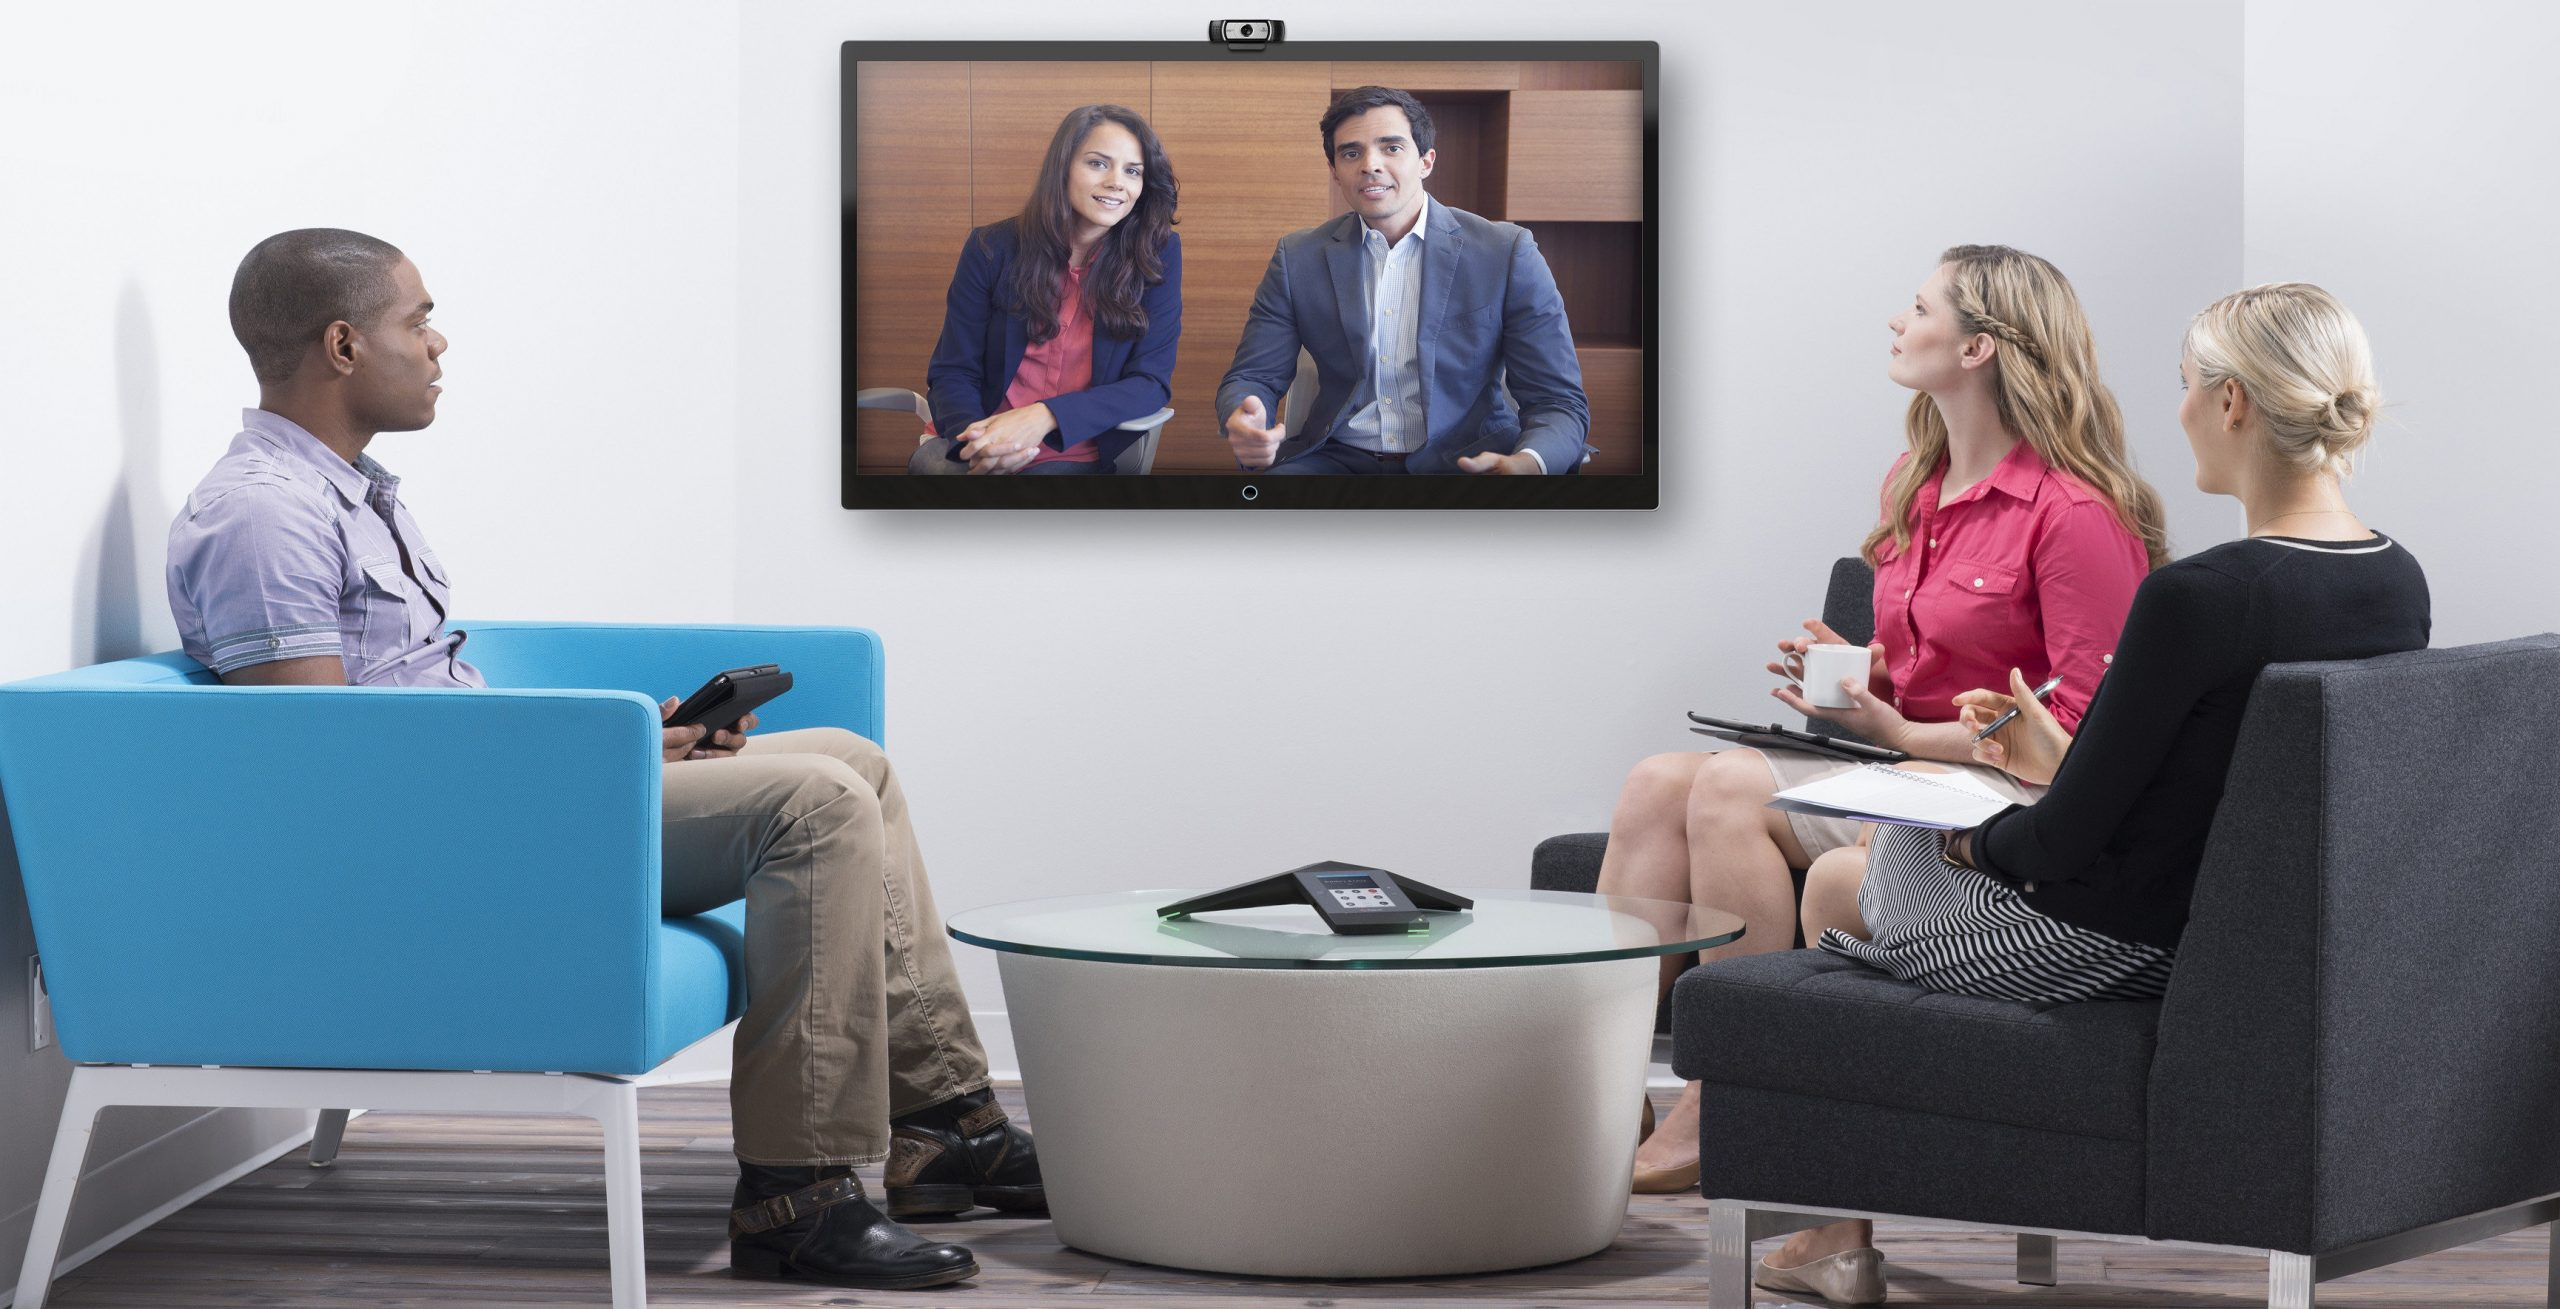 video conference systems optimized for Microsoft Teams and Skype for Business video conferencing